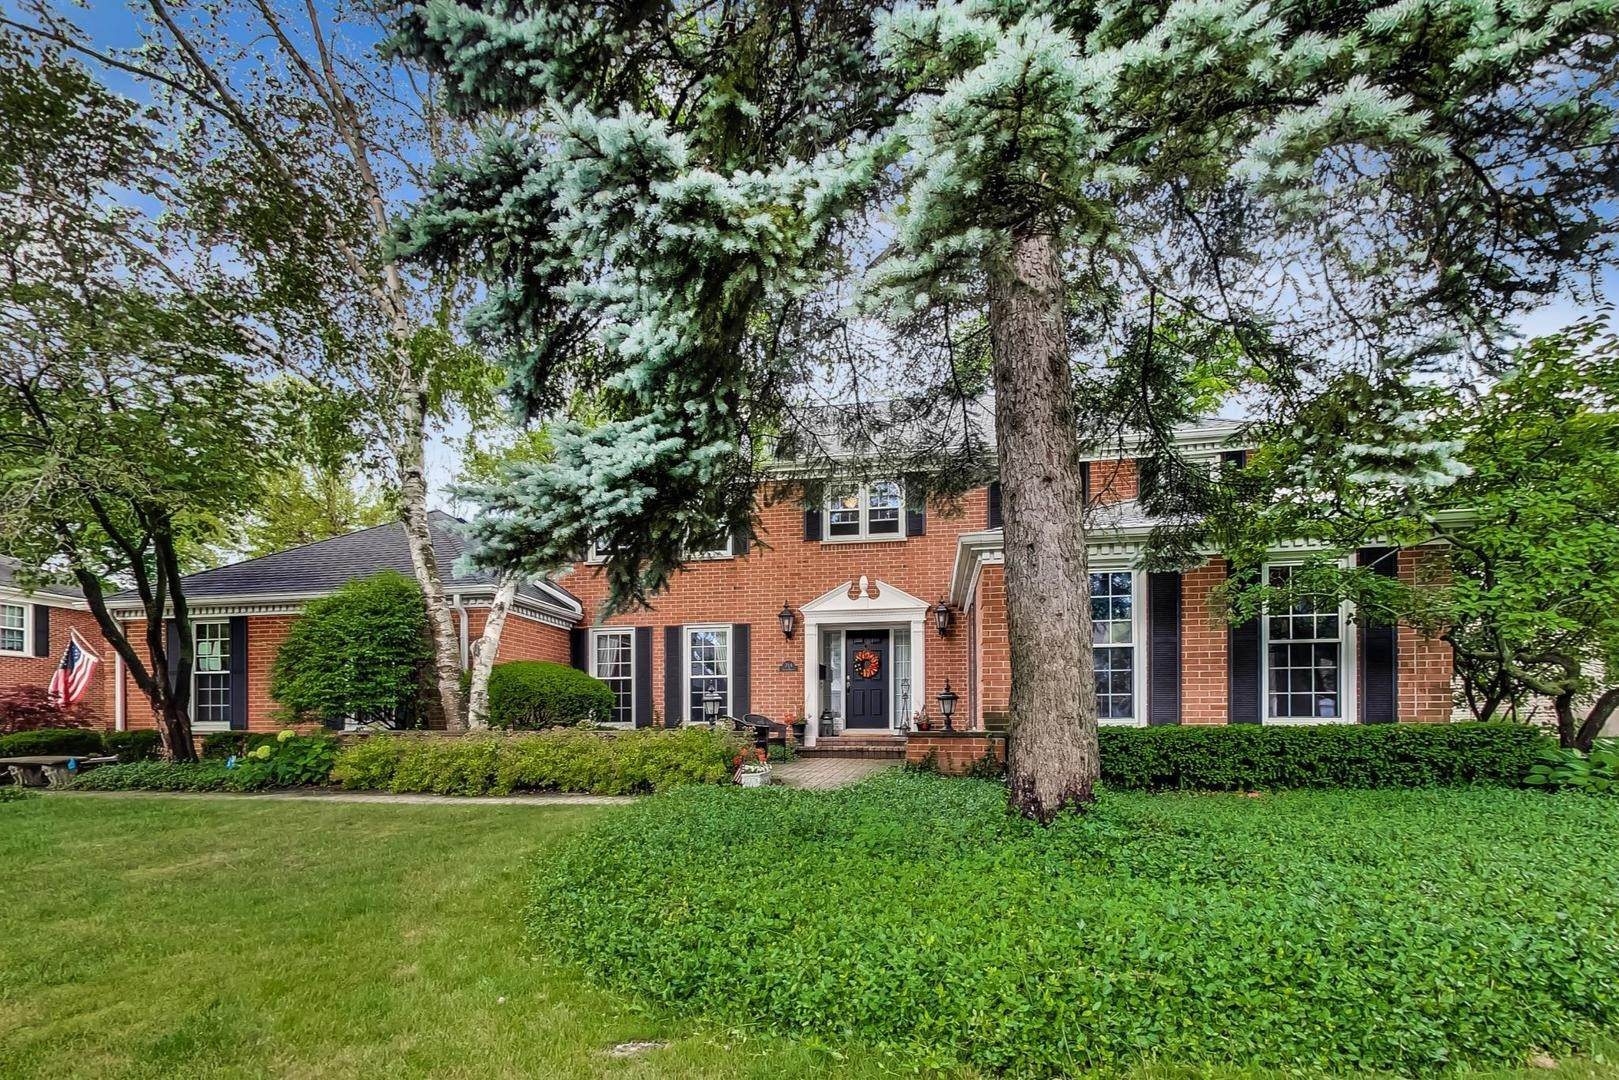 Single Family Homes for Sale at 714 N Haddow Avenue Arlington Heights, Illinois 60004 United States